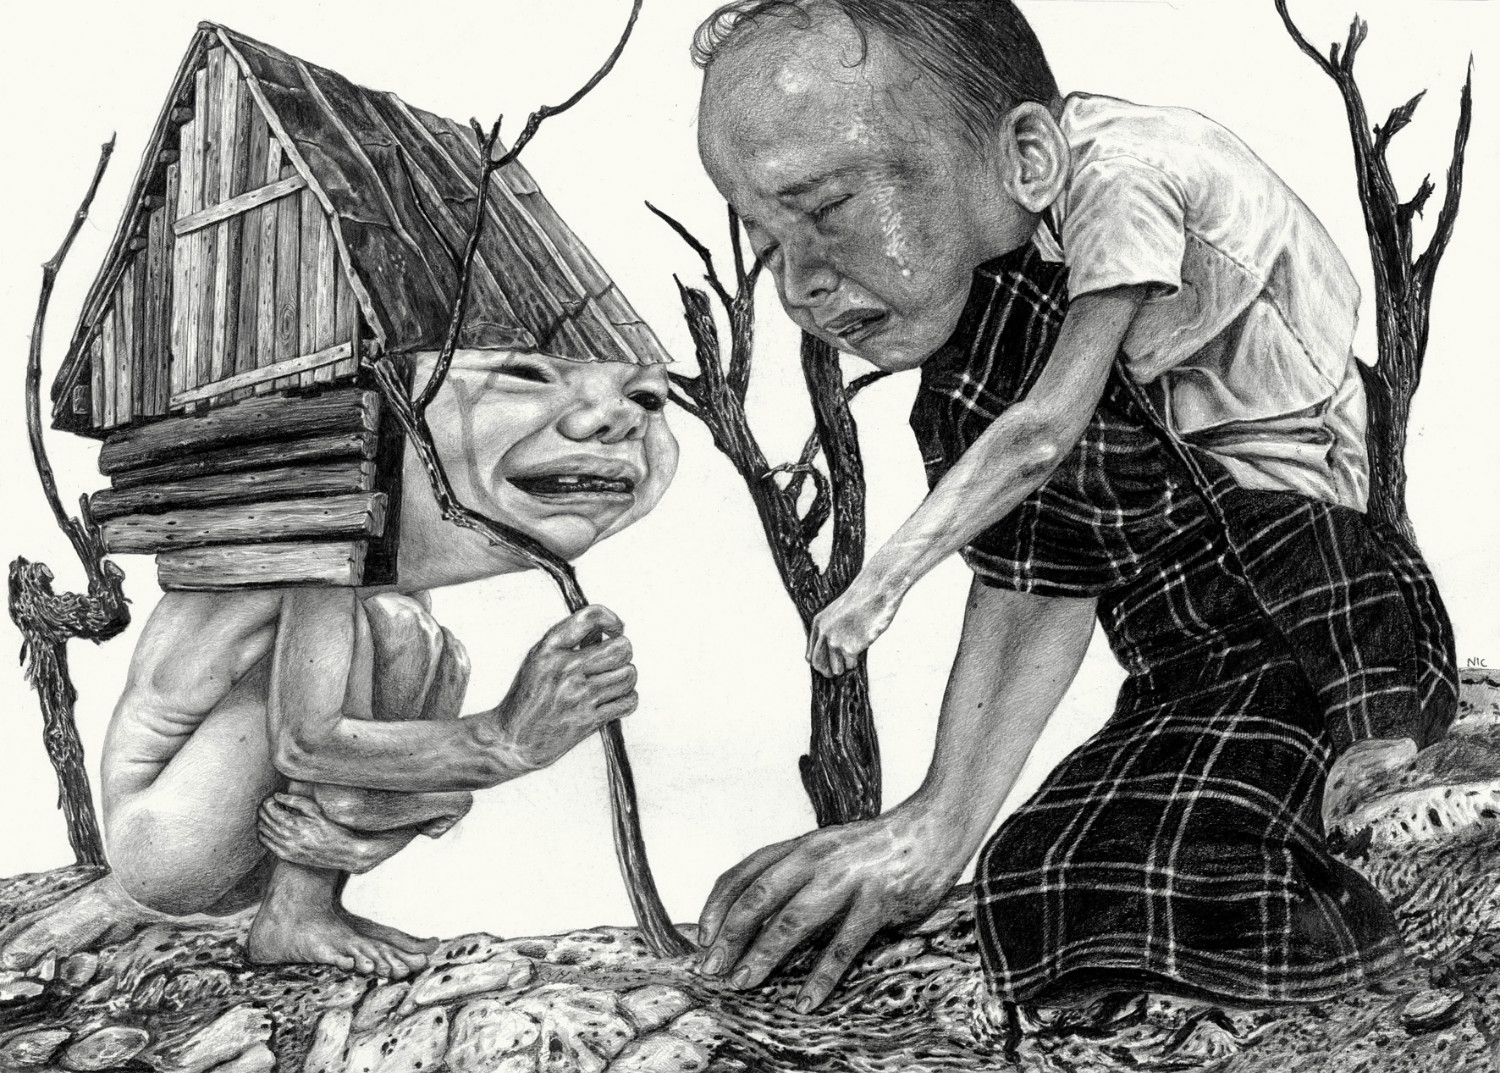 nicola alessandrini pencil drawings weird